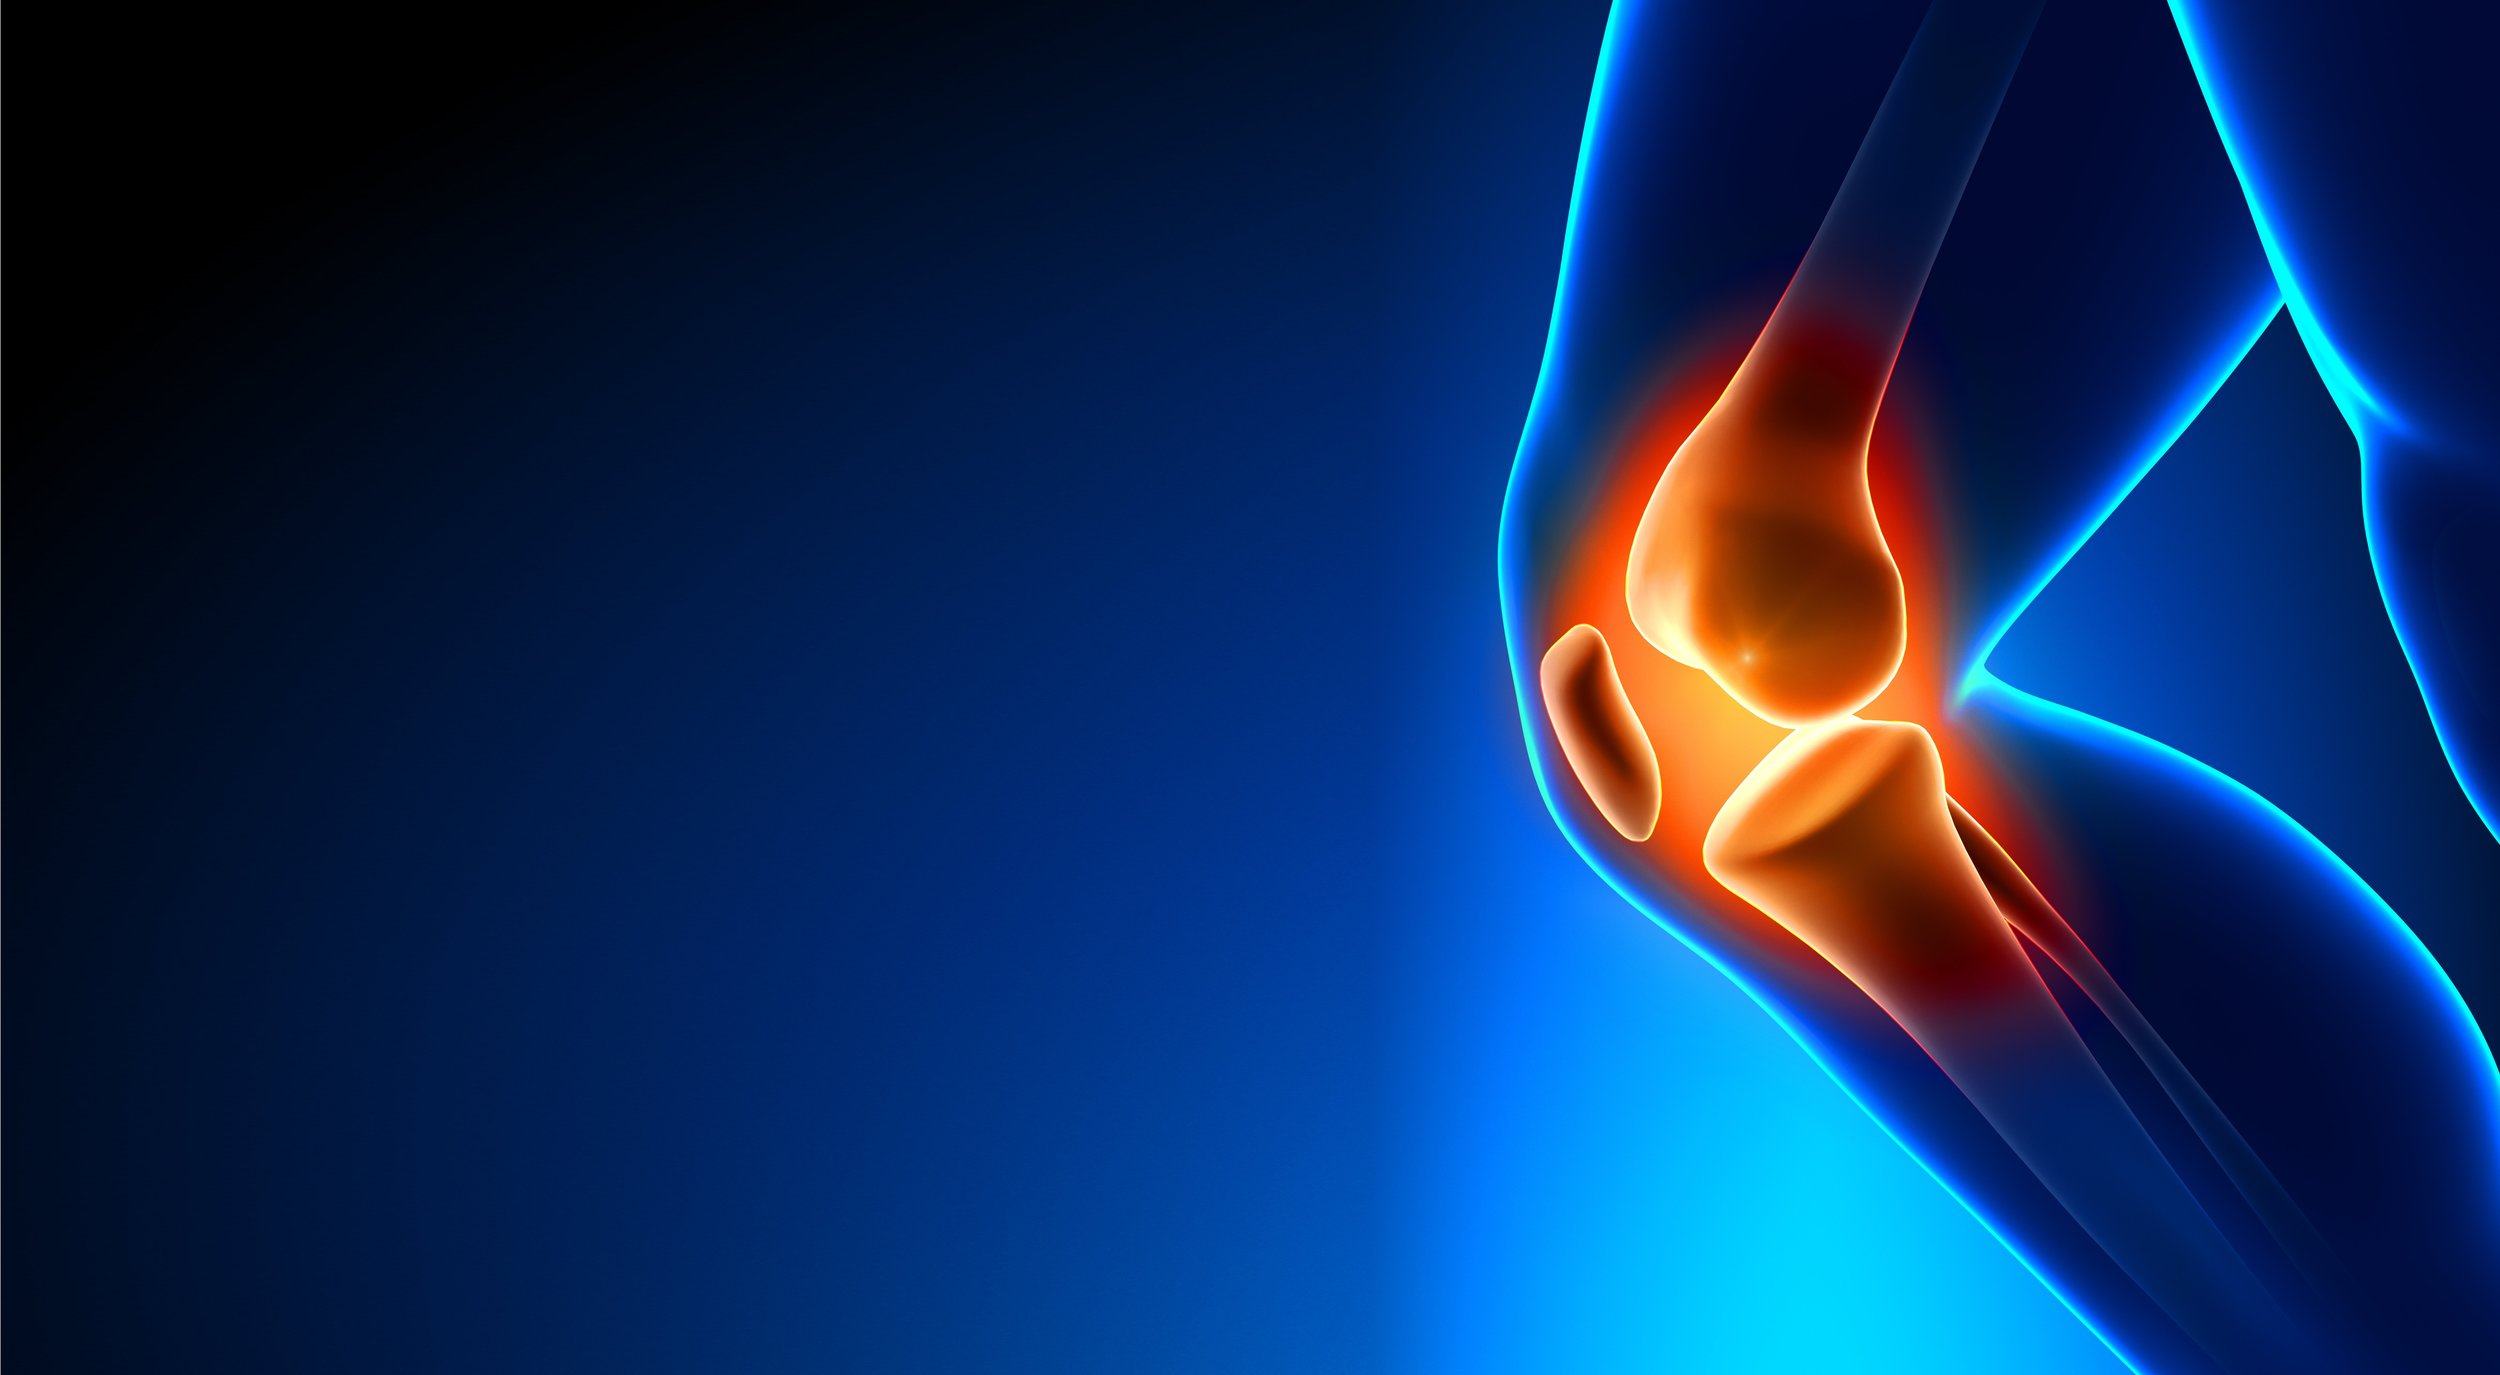 Knee Injuries   Minimally invasive knee replacement | ACL reconstruction | Cartilage Transplant | Meniscal repair | Ligament Reconstruction | Patellofemoral Syndrome | MACI procedure   SCHEDULE AN APPOINTMENT